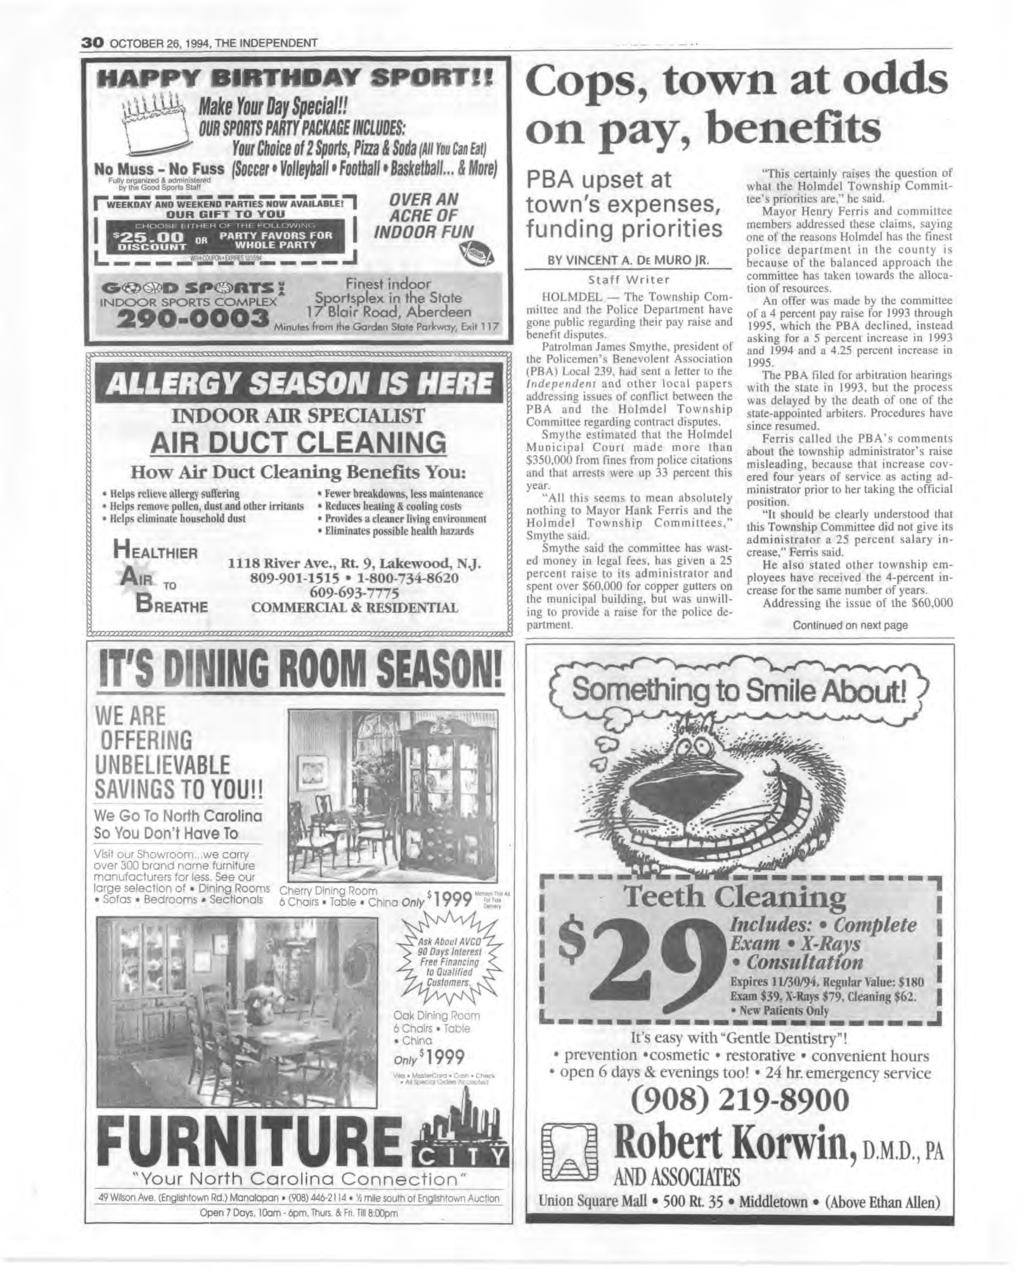 3 0 OCTOBER 26, 1994, THE NDEPENDENT Make Your toy Special!! m spouts pmpmec incms: four Choiceof 2 Sports, Pisa i Sotli /ill m Cmtm No Muss - No Fuss Soccei Volletball Foothell Basketball.